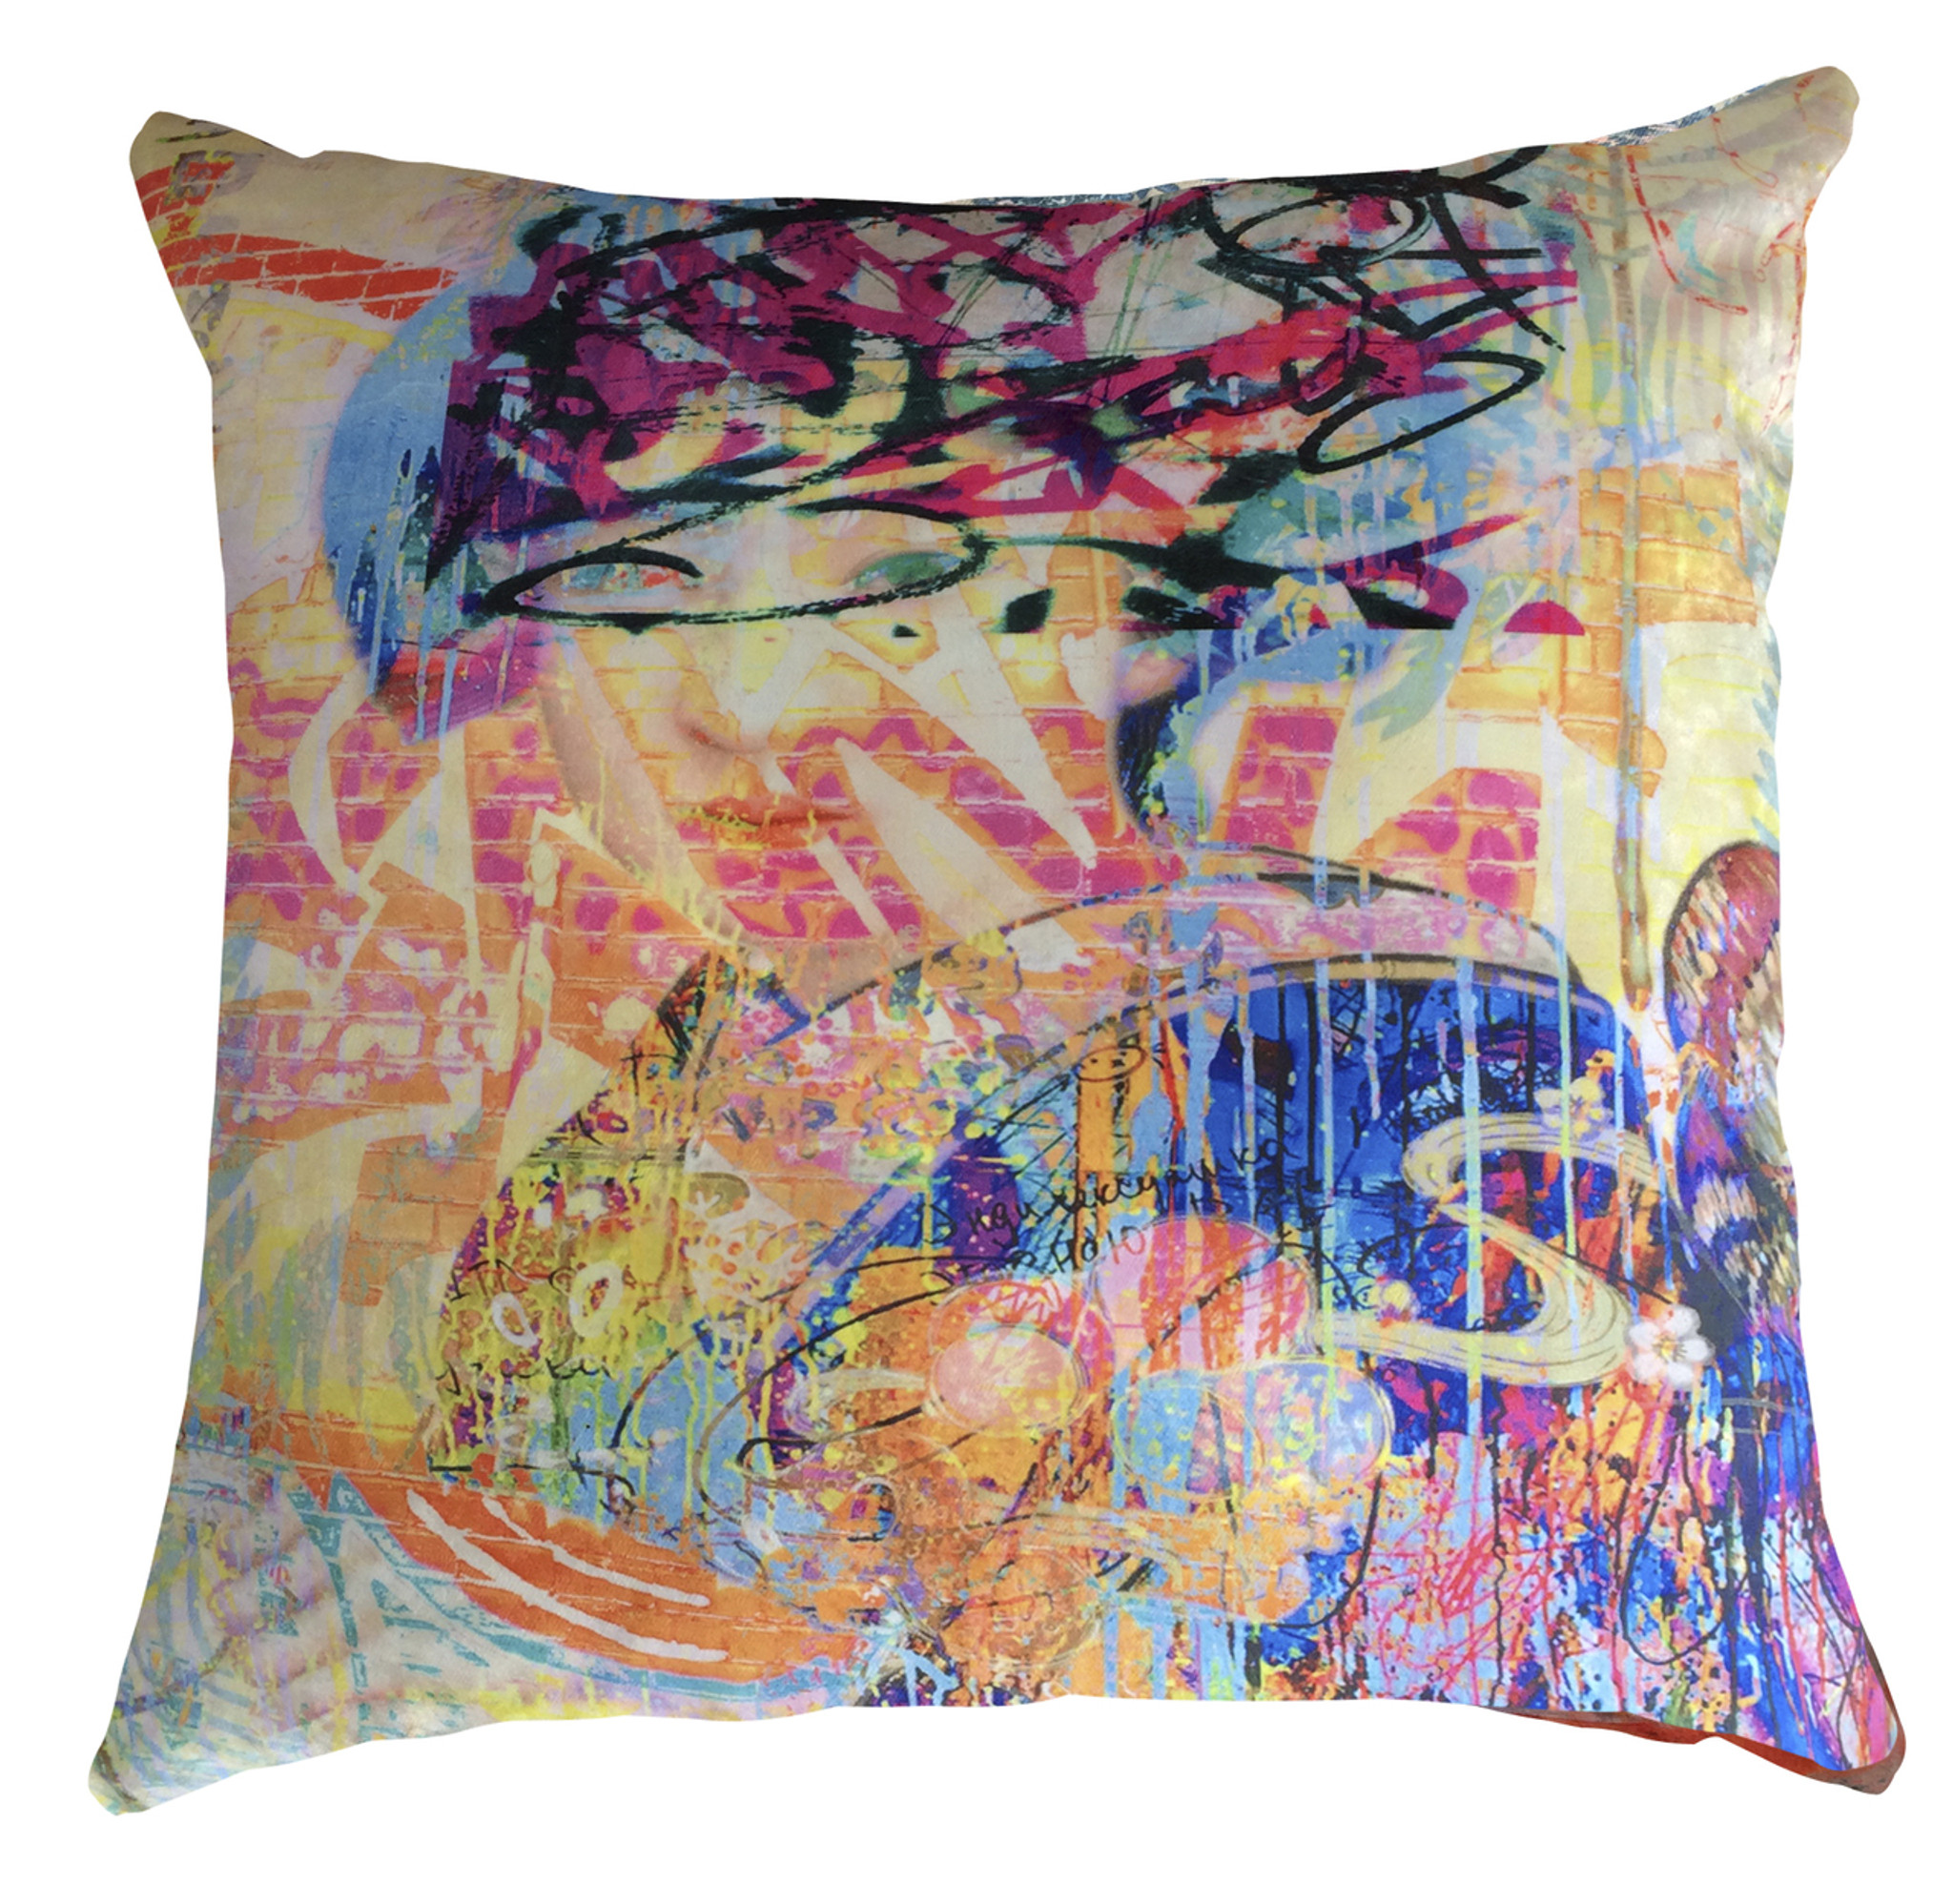 Cushion Cover - Graffiti Yum Yum